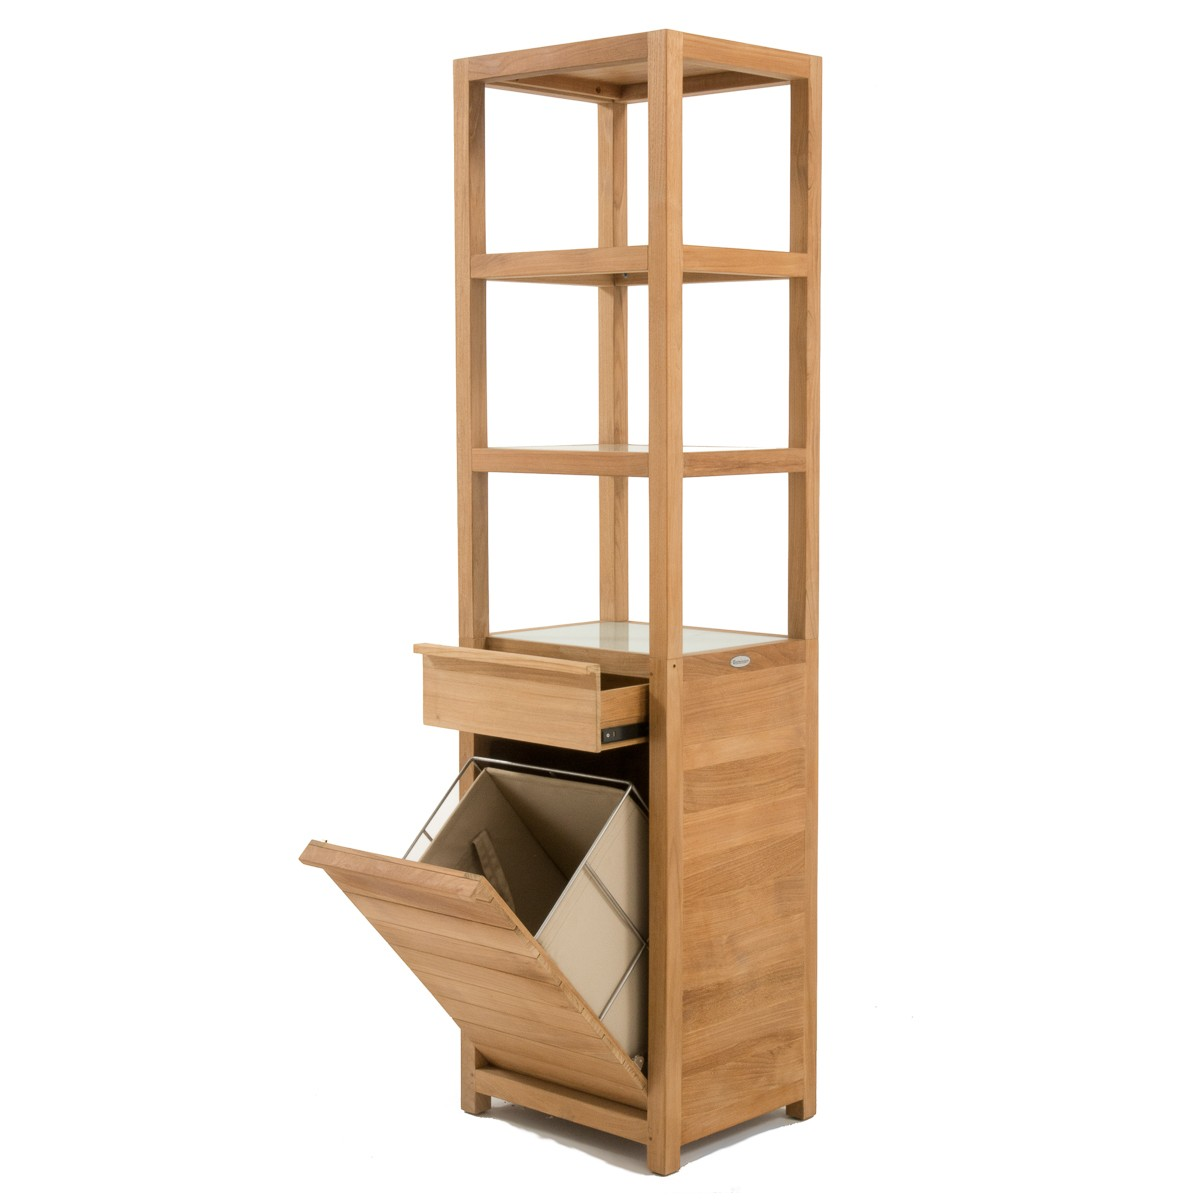 Pacifica Teak Laundry Hamper And Shelf Westminster Teak